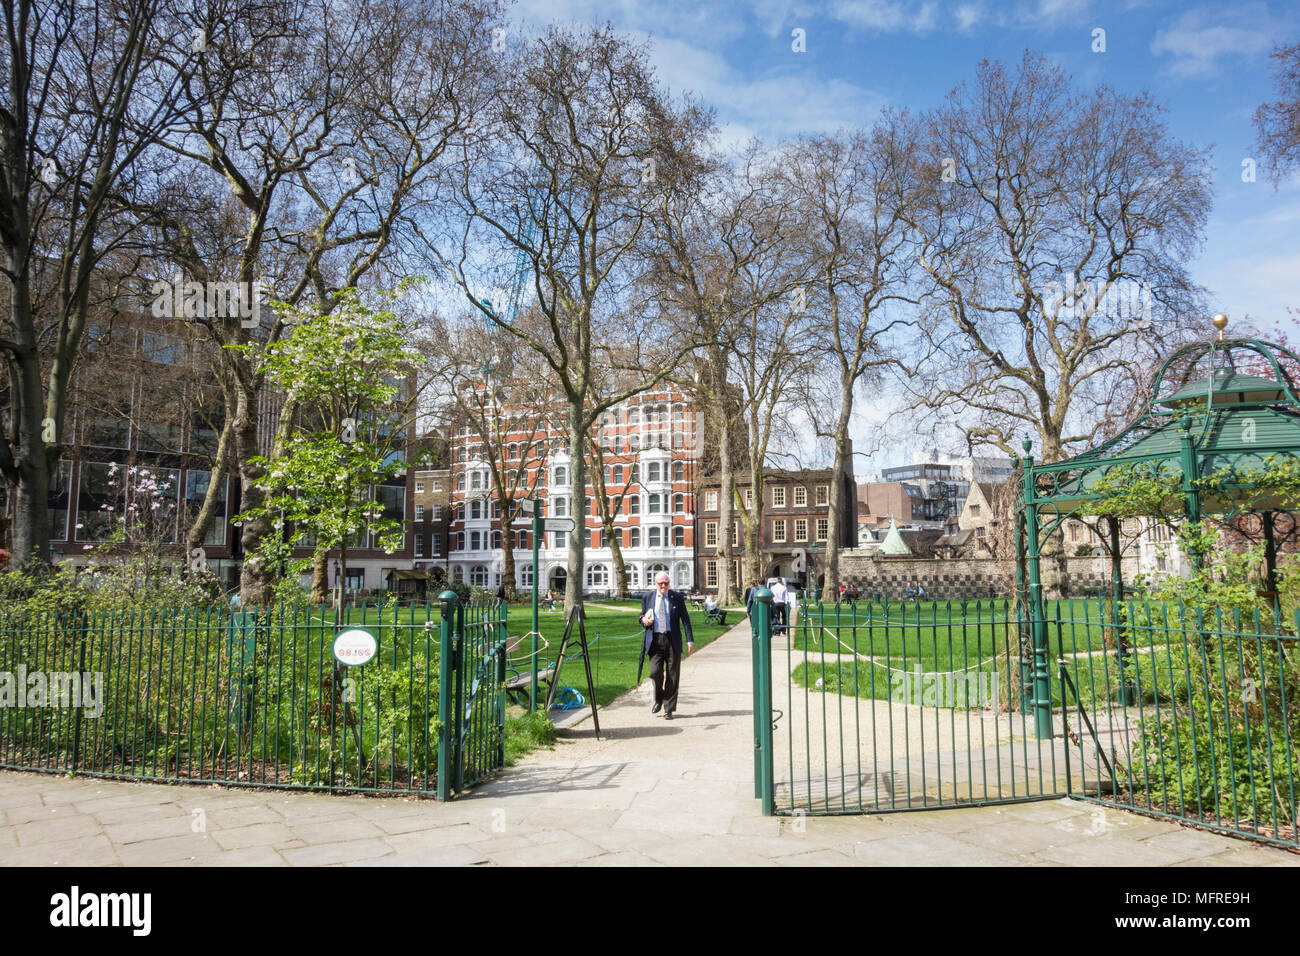 People relaxing on a summer's day in Charterhouse Square, London, EC1, UK - Stock Image